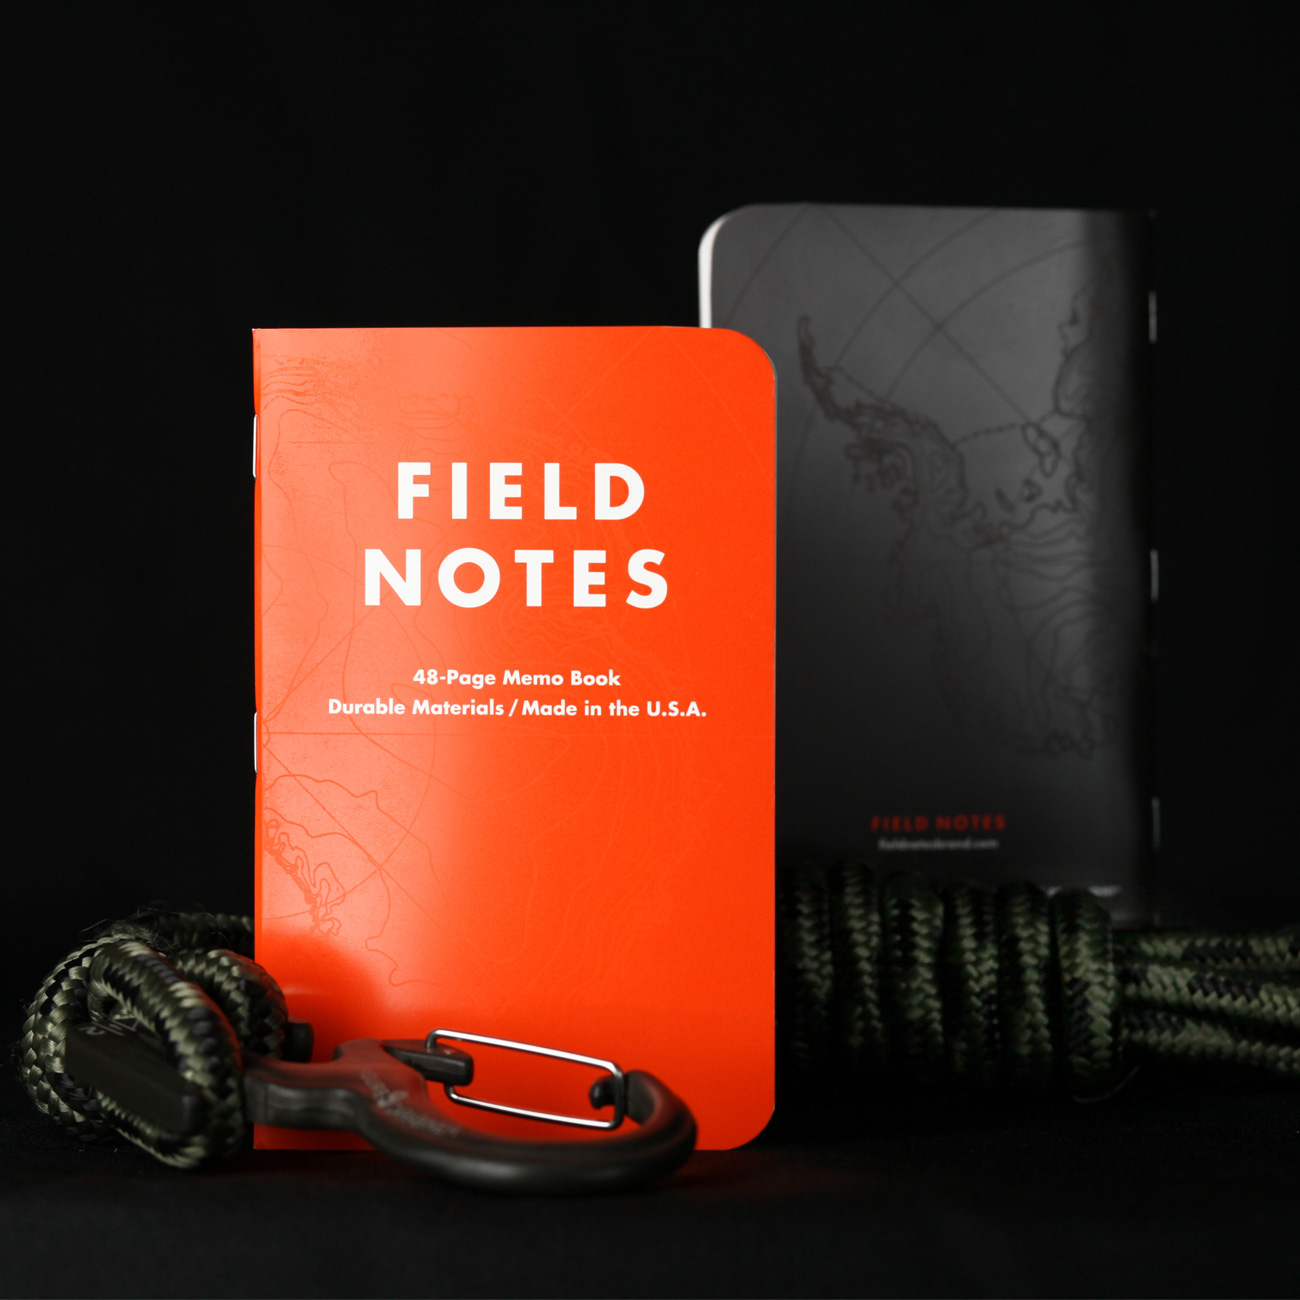 Field Notes, Expedition Notizhefte, orange vorne, hinten schwarz,